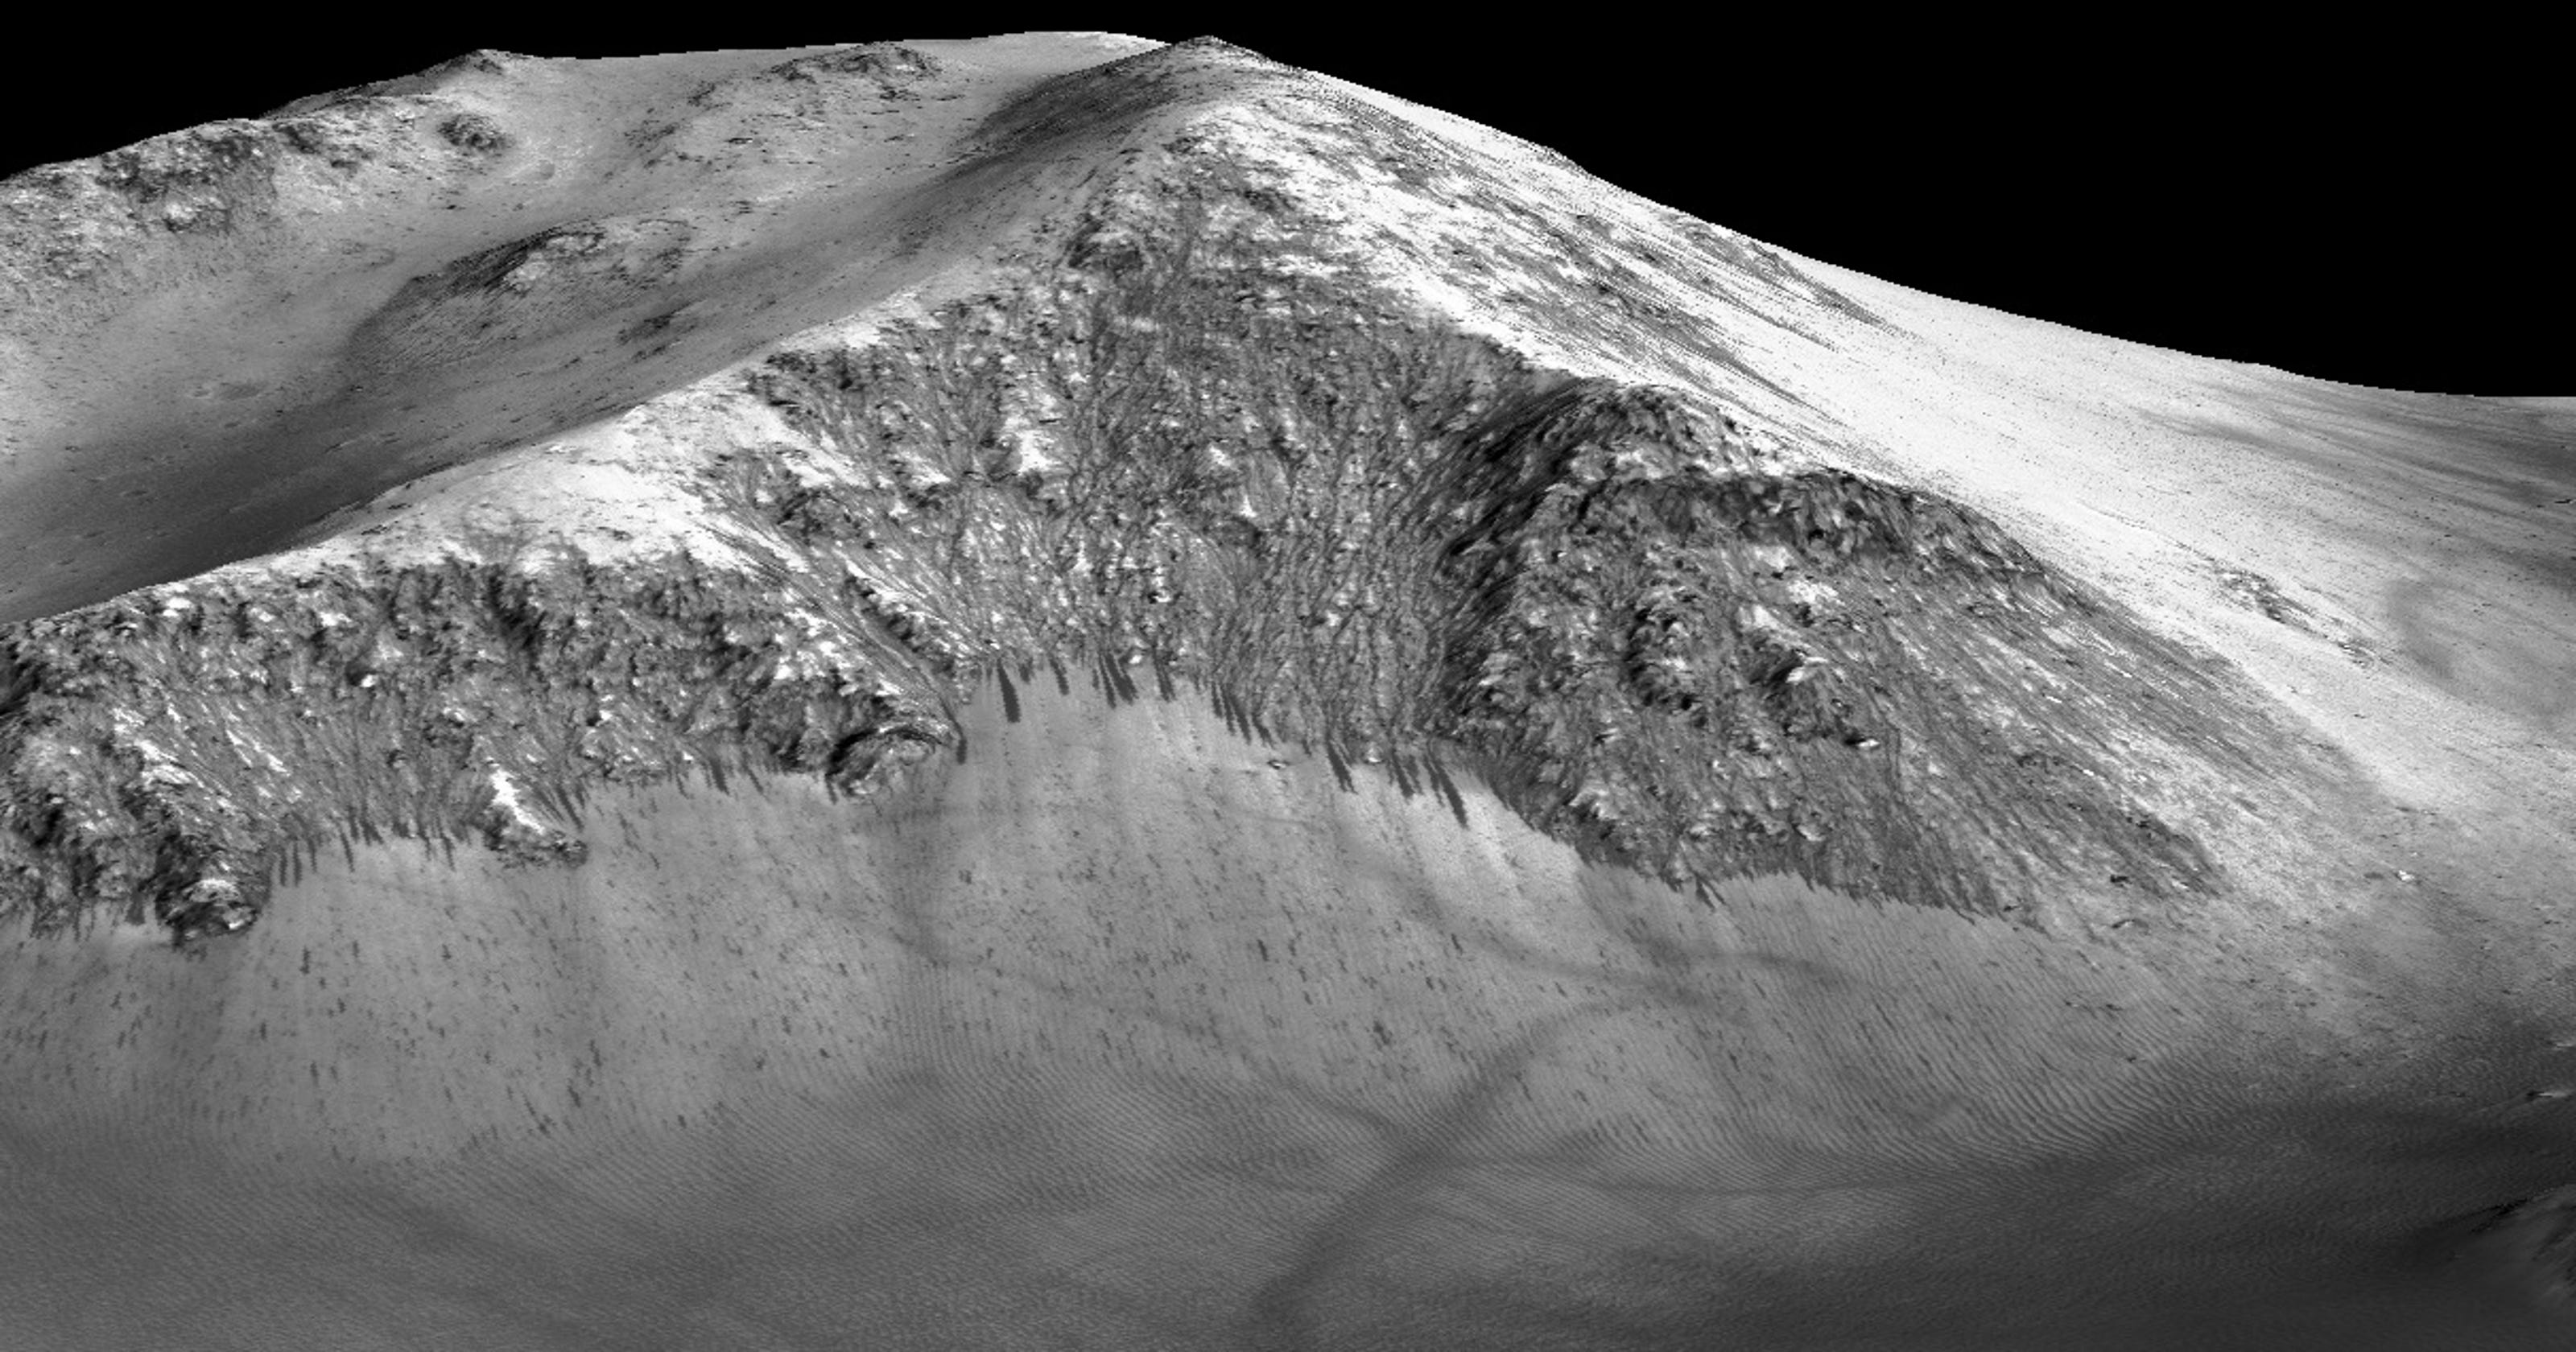 NASA finds evidence of recent flowing water on Mars